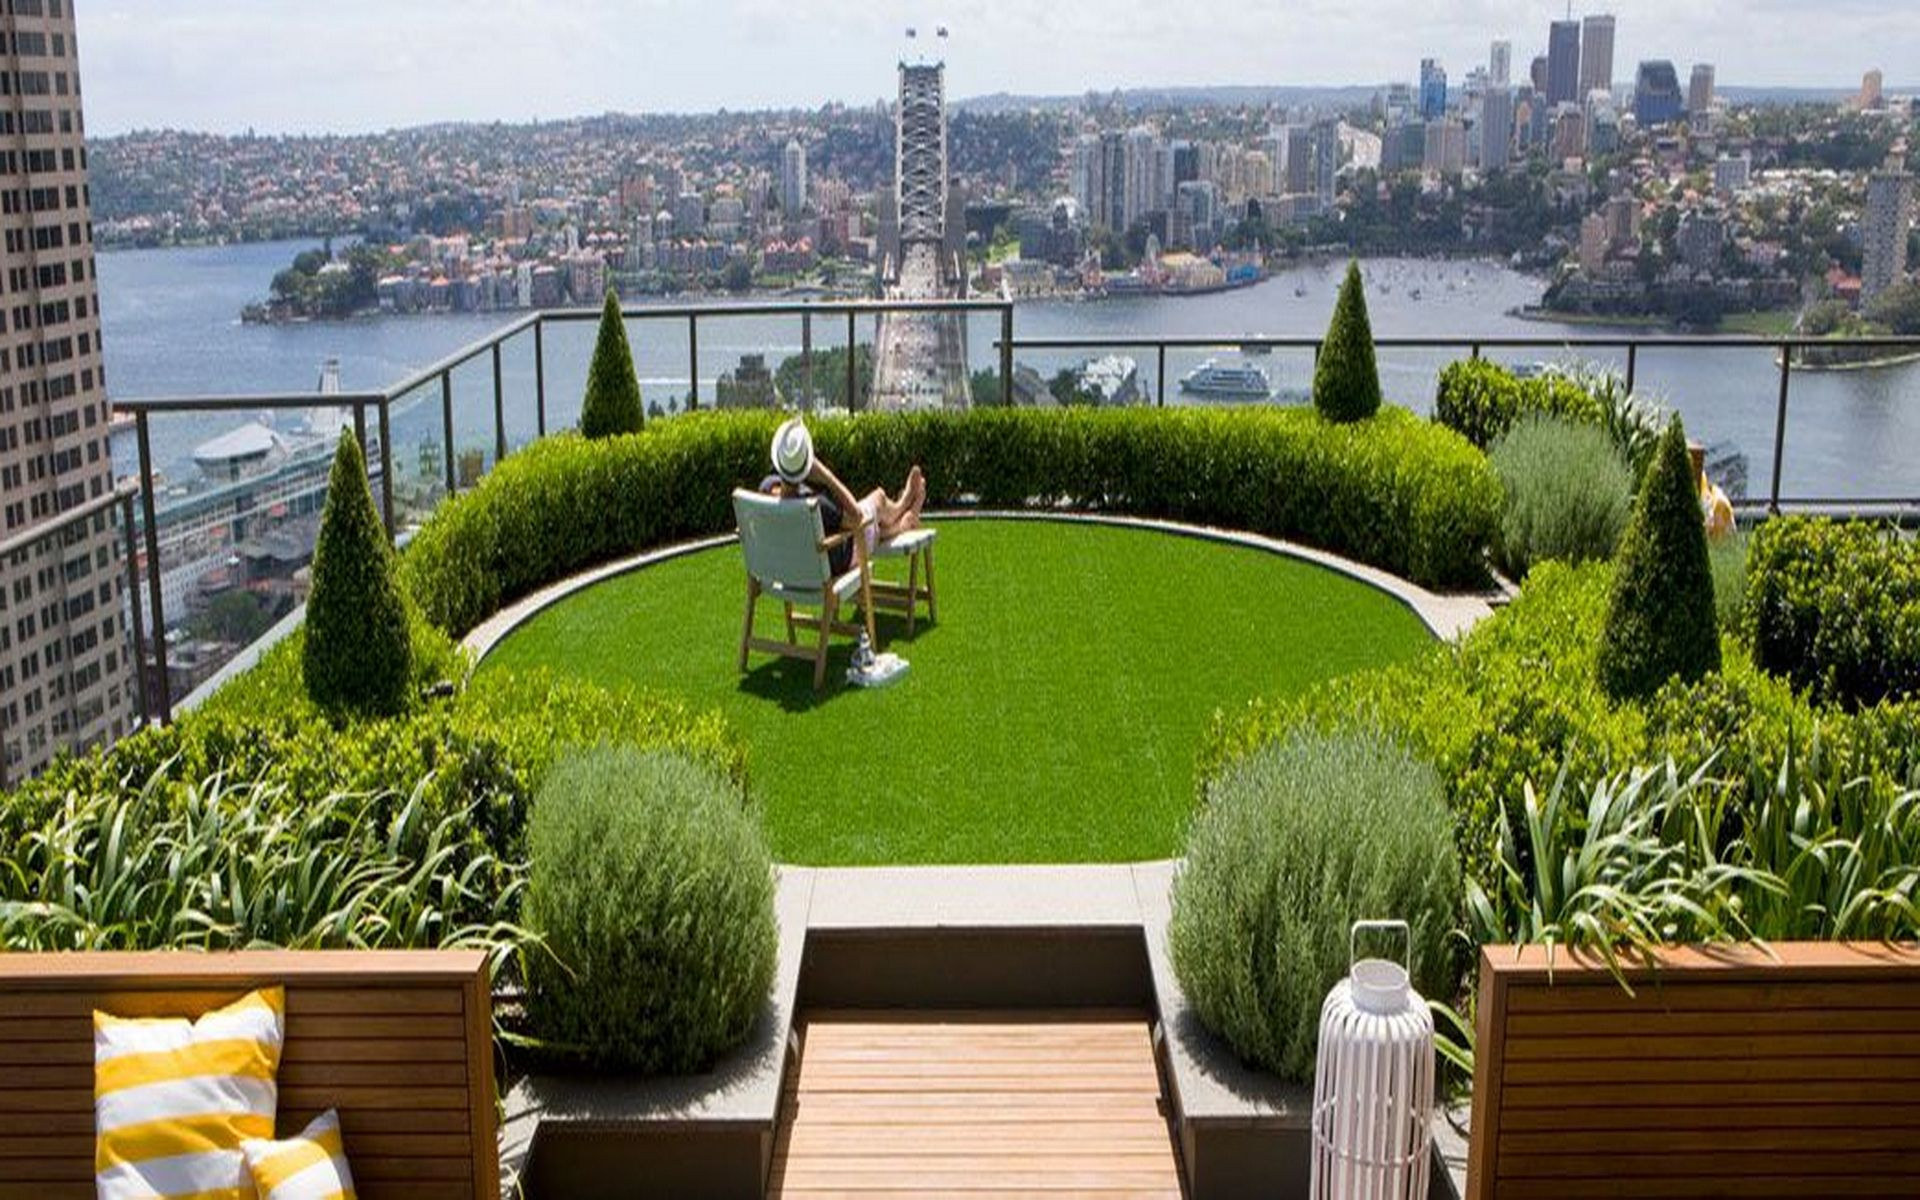 Slope Garden Ideas City Landscape Top View From Rooftop Design With Modern Green Round Wood Bench Set Also Mid Pine Plants Enjoyable Flower